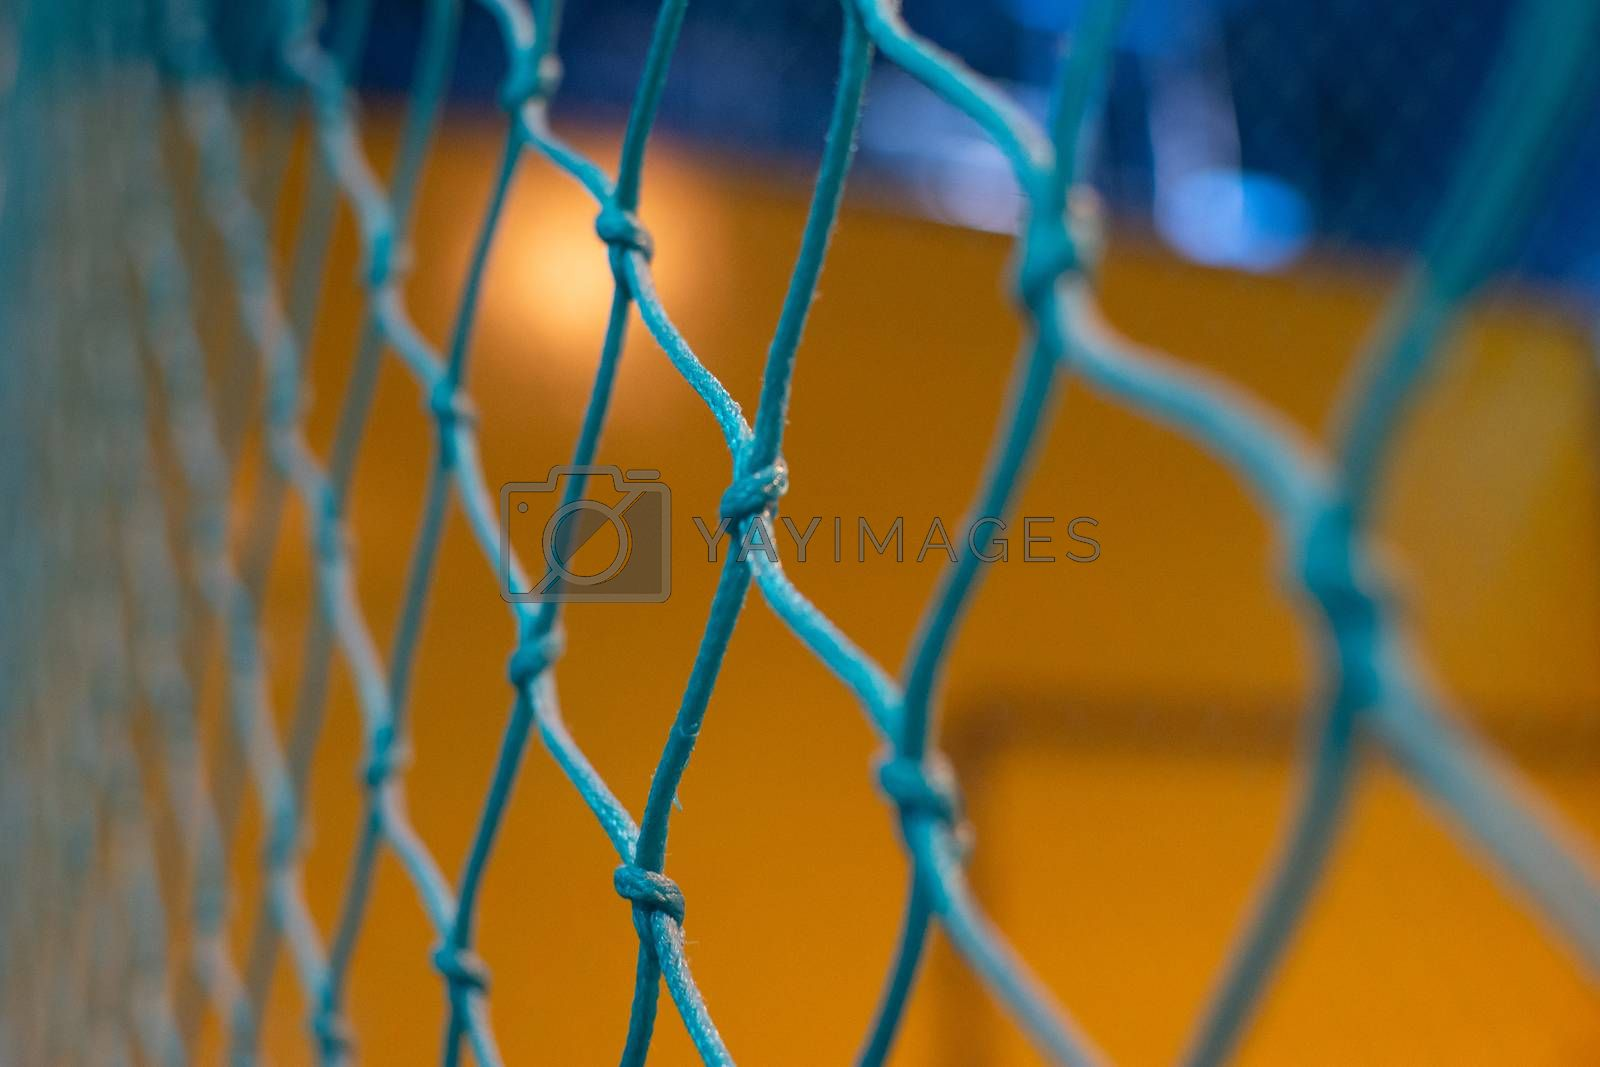 Looing through a blue net to a yellow and blue background blurred out. Games, sports, goals, or concepts.